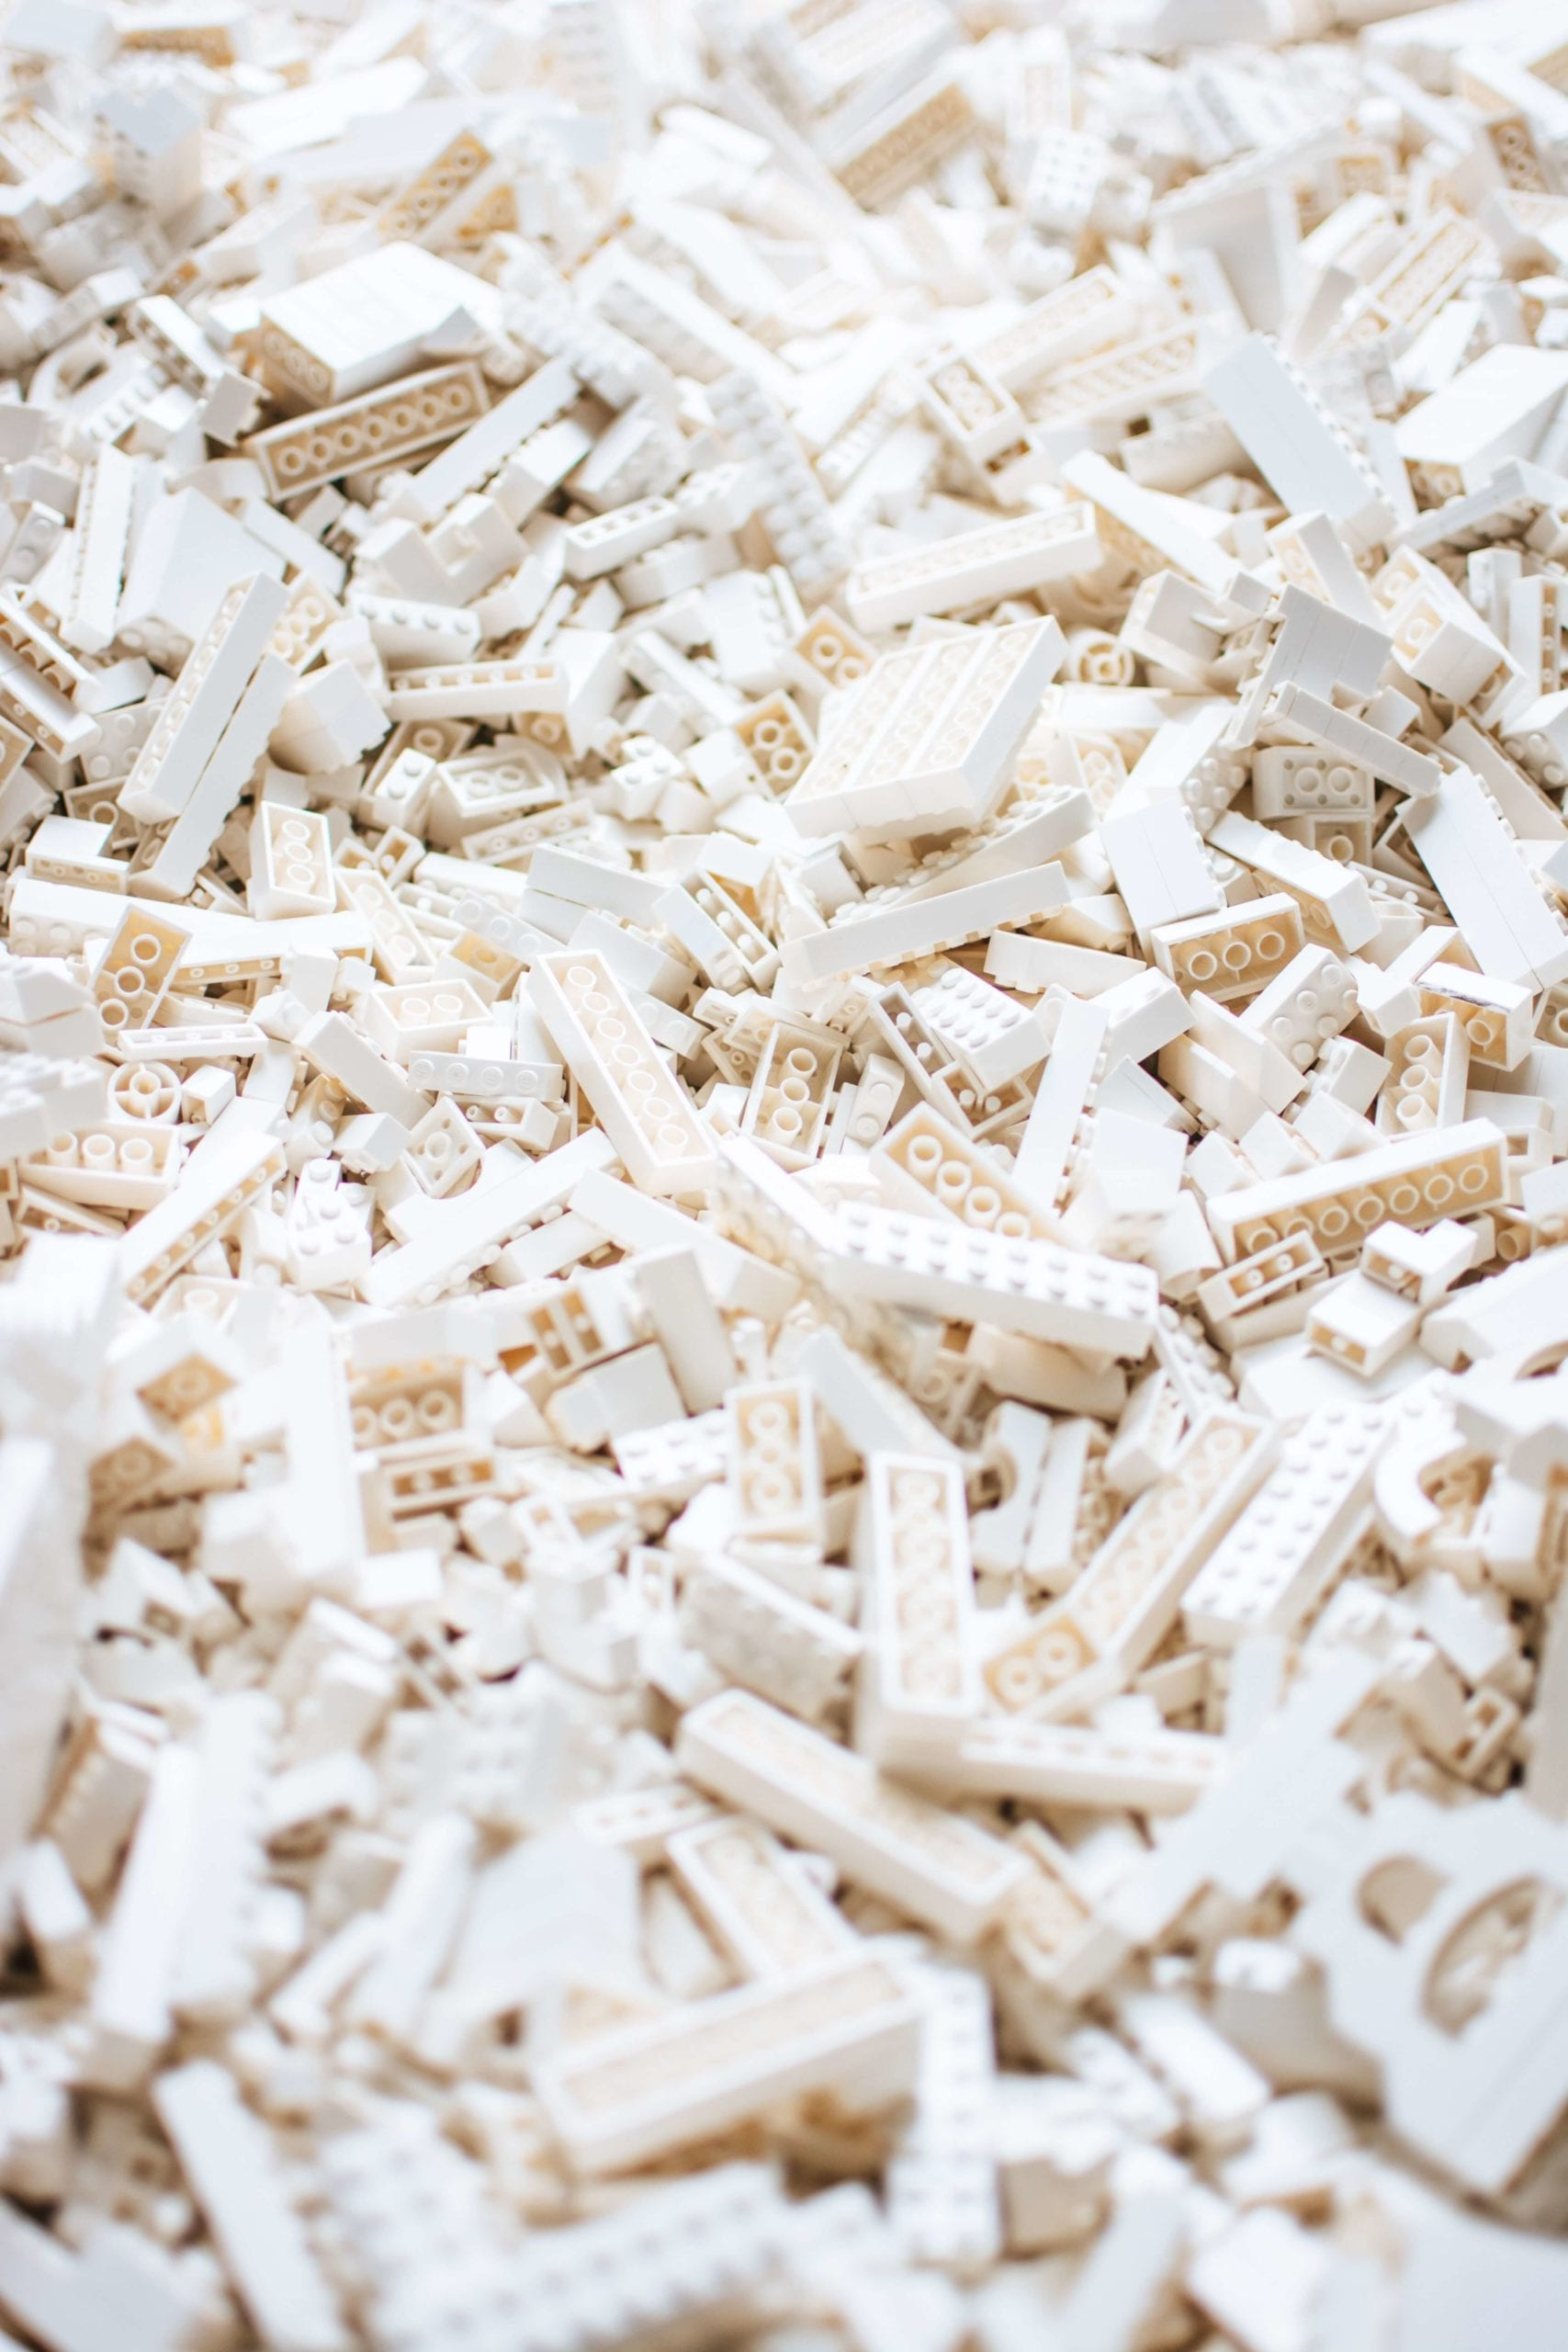 white lego pieces